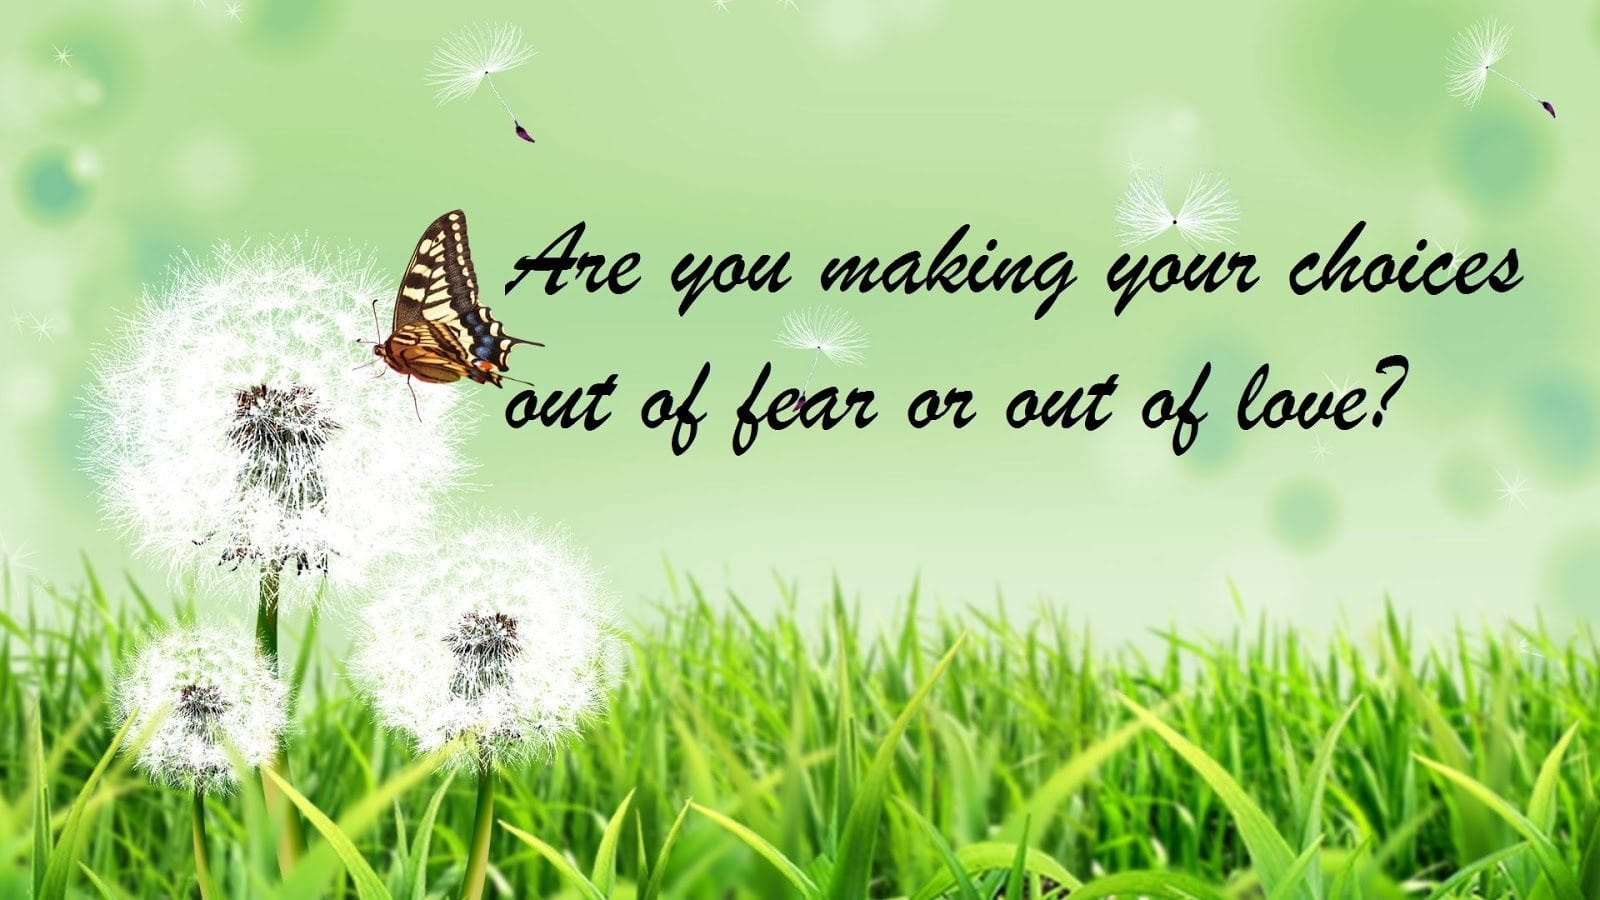 Are you making your choices out of fear or out of love?